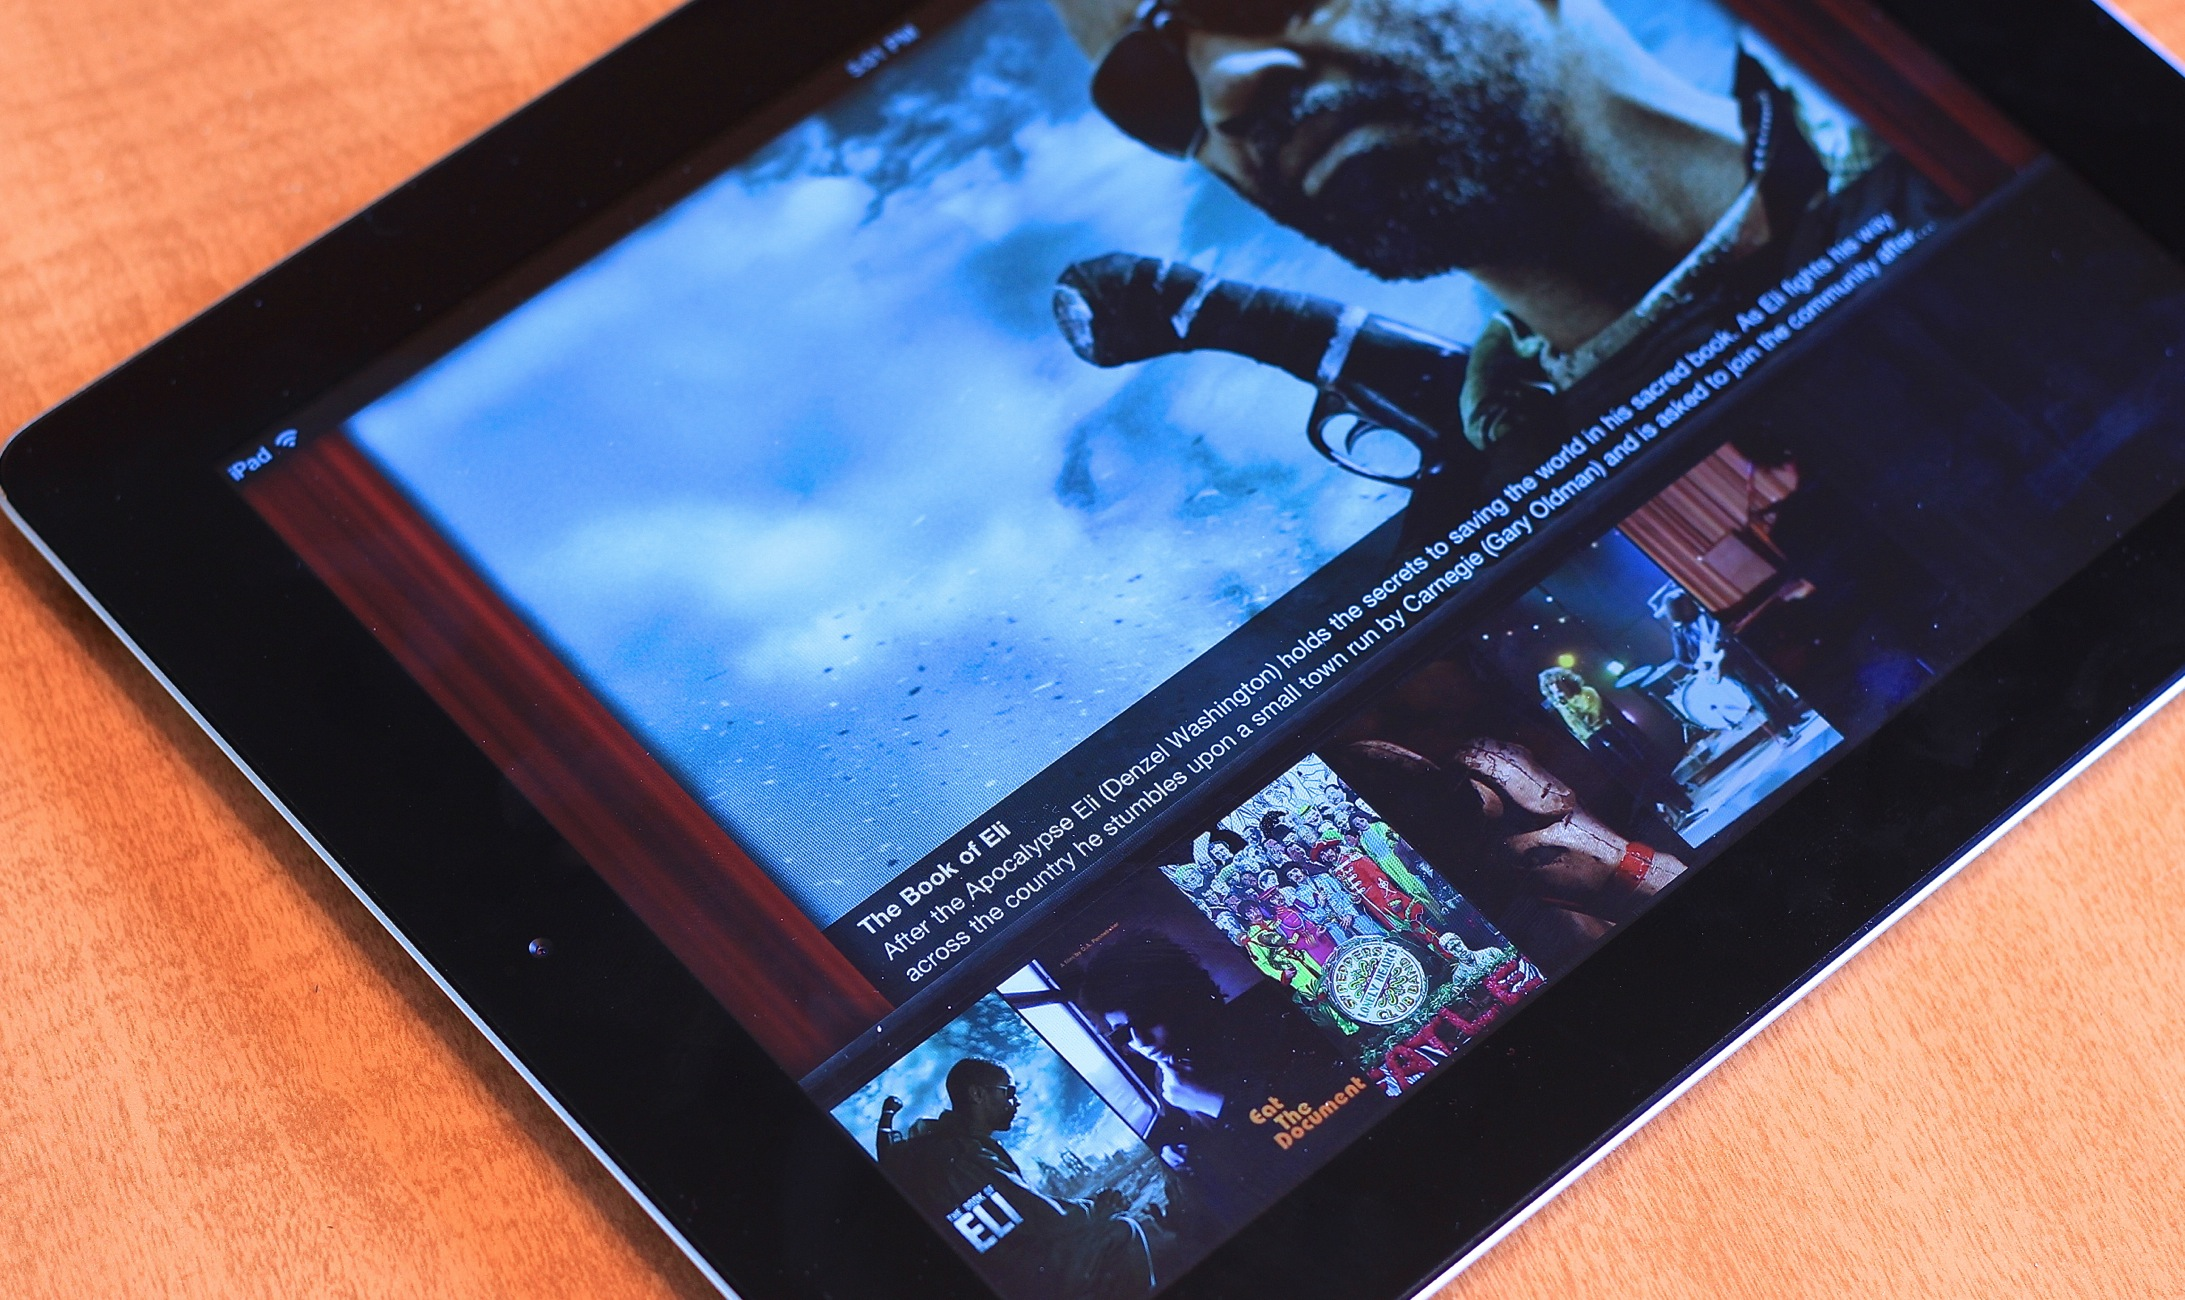 Review: Infuse by FireCore is a versatile way to watch videos on your iOS device